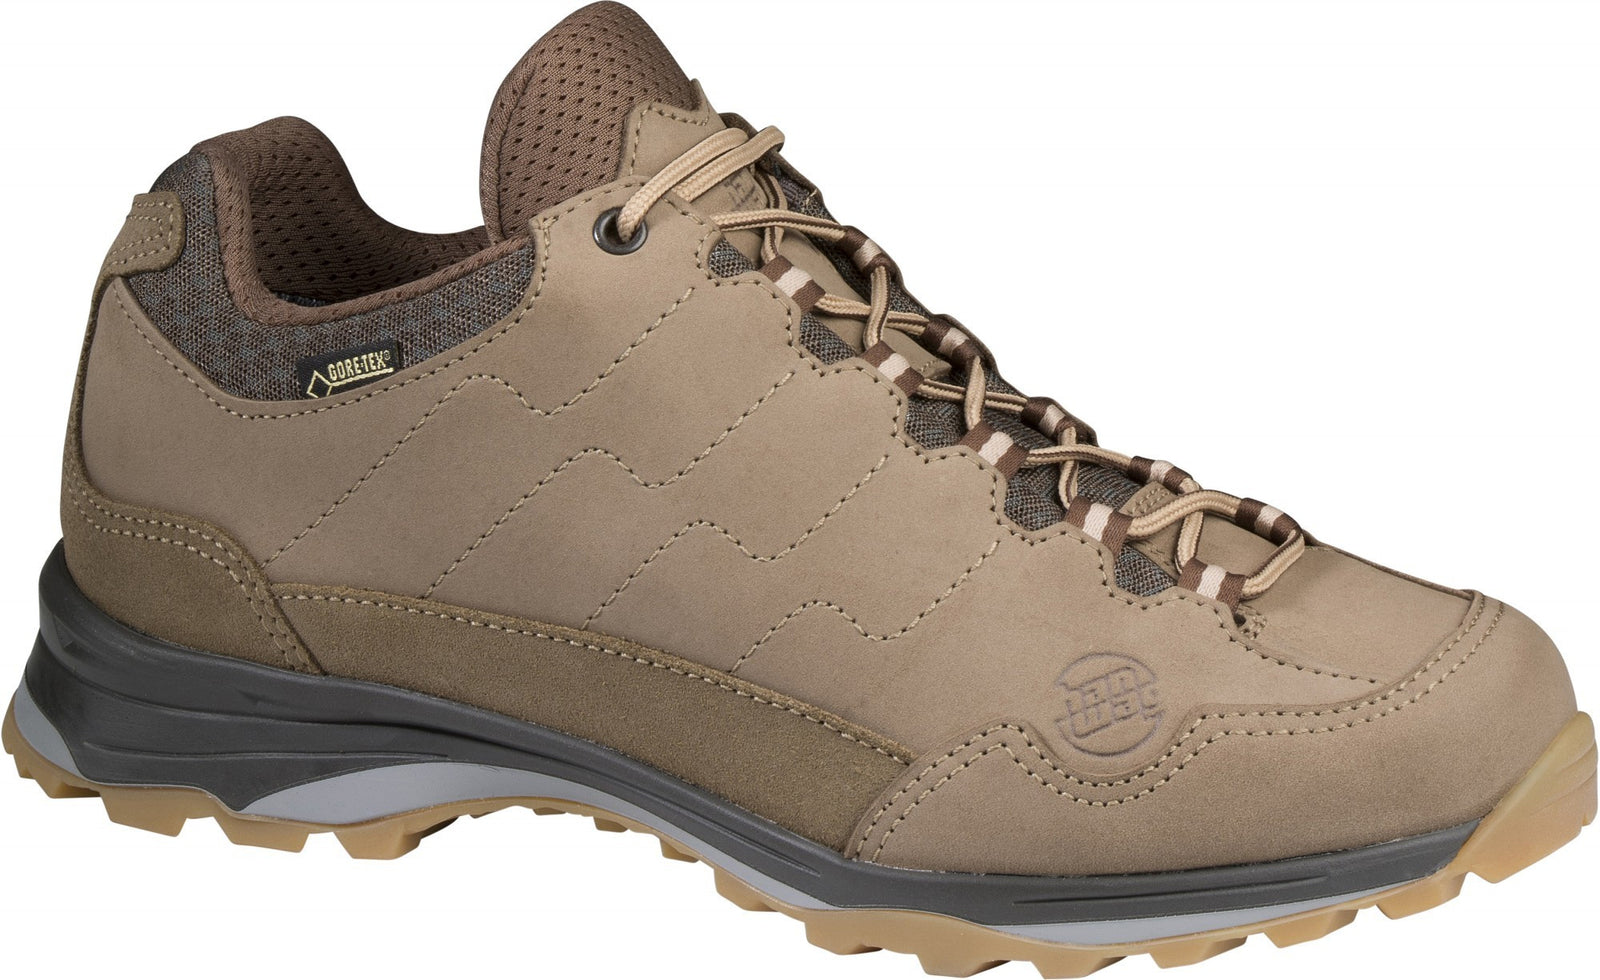 Hanwag Robin Light Lady GTX - Trailblazer Outdoors, Pickering